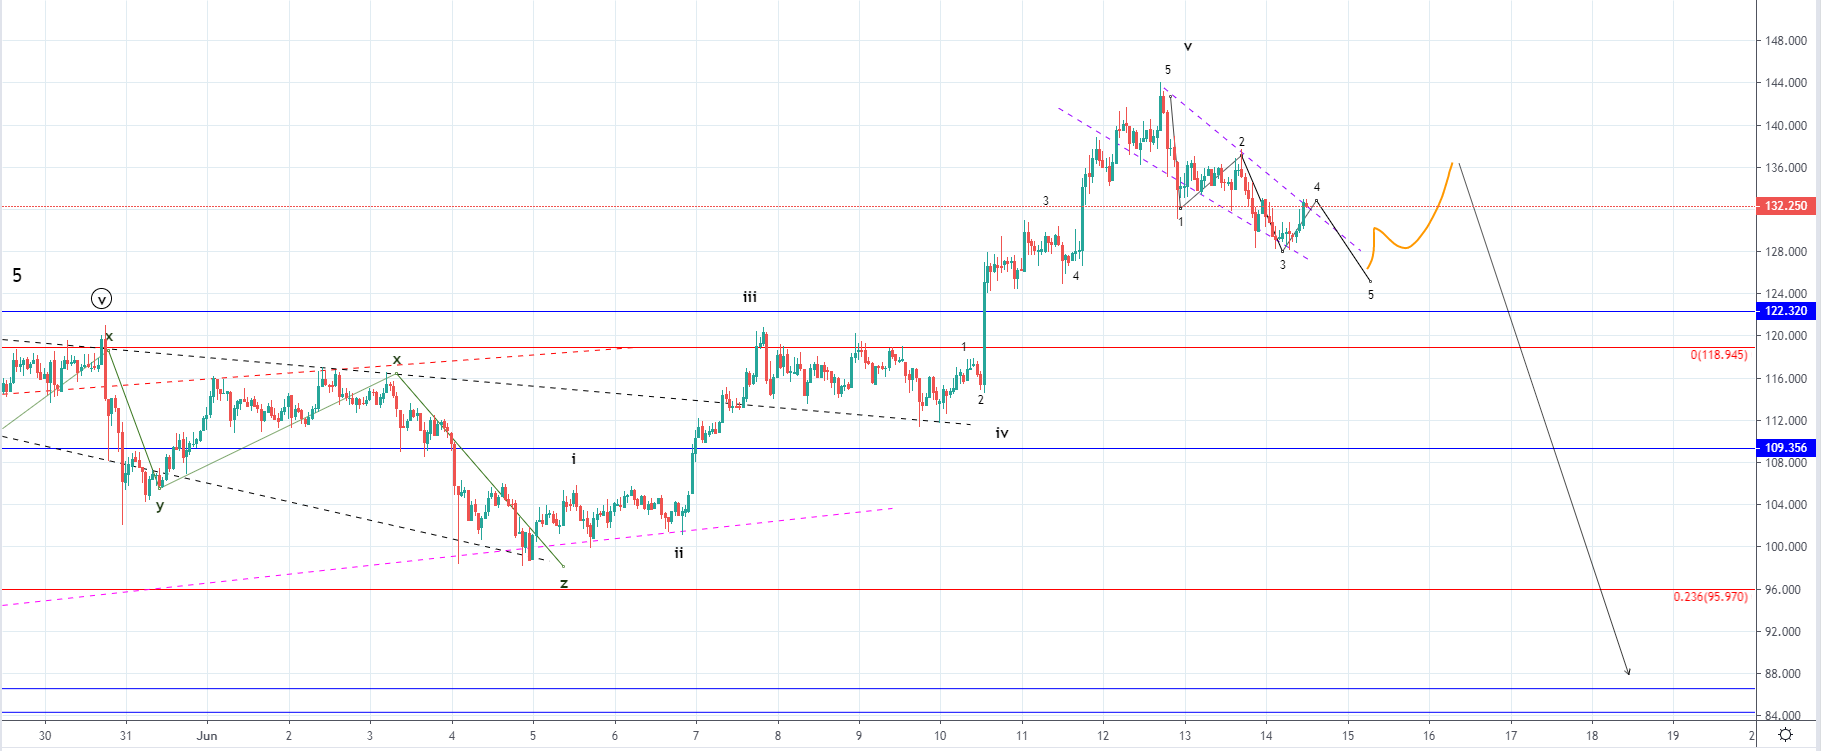 Litecoin Price Analysis: LTC Decreases, Remains Above